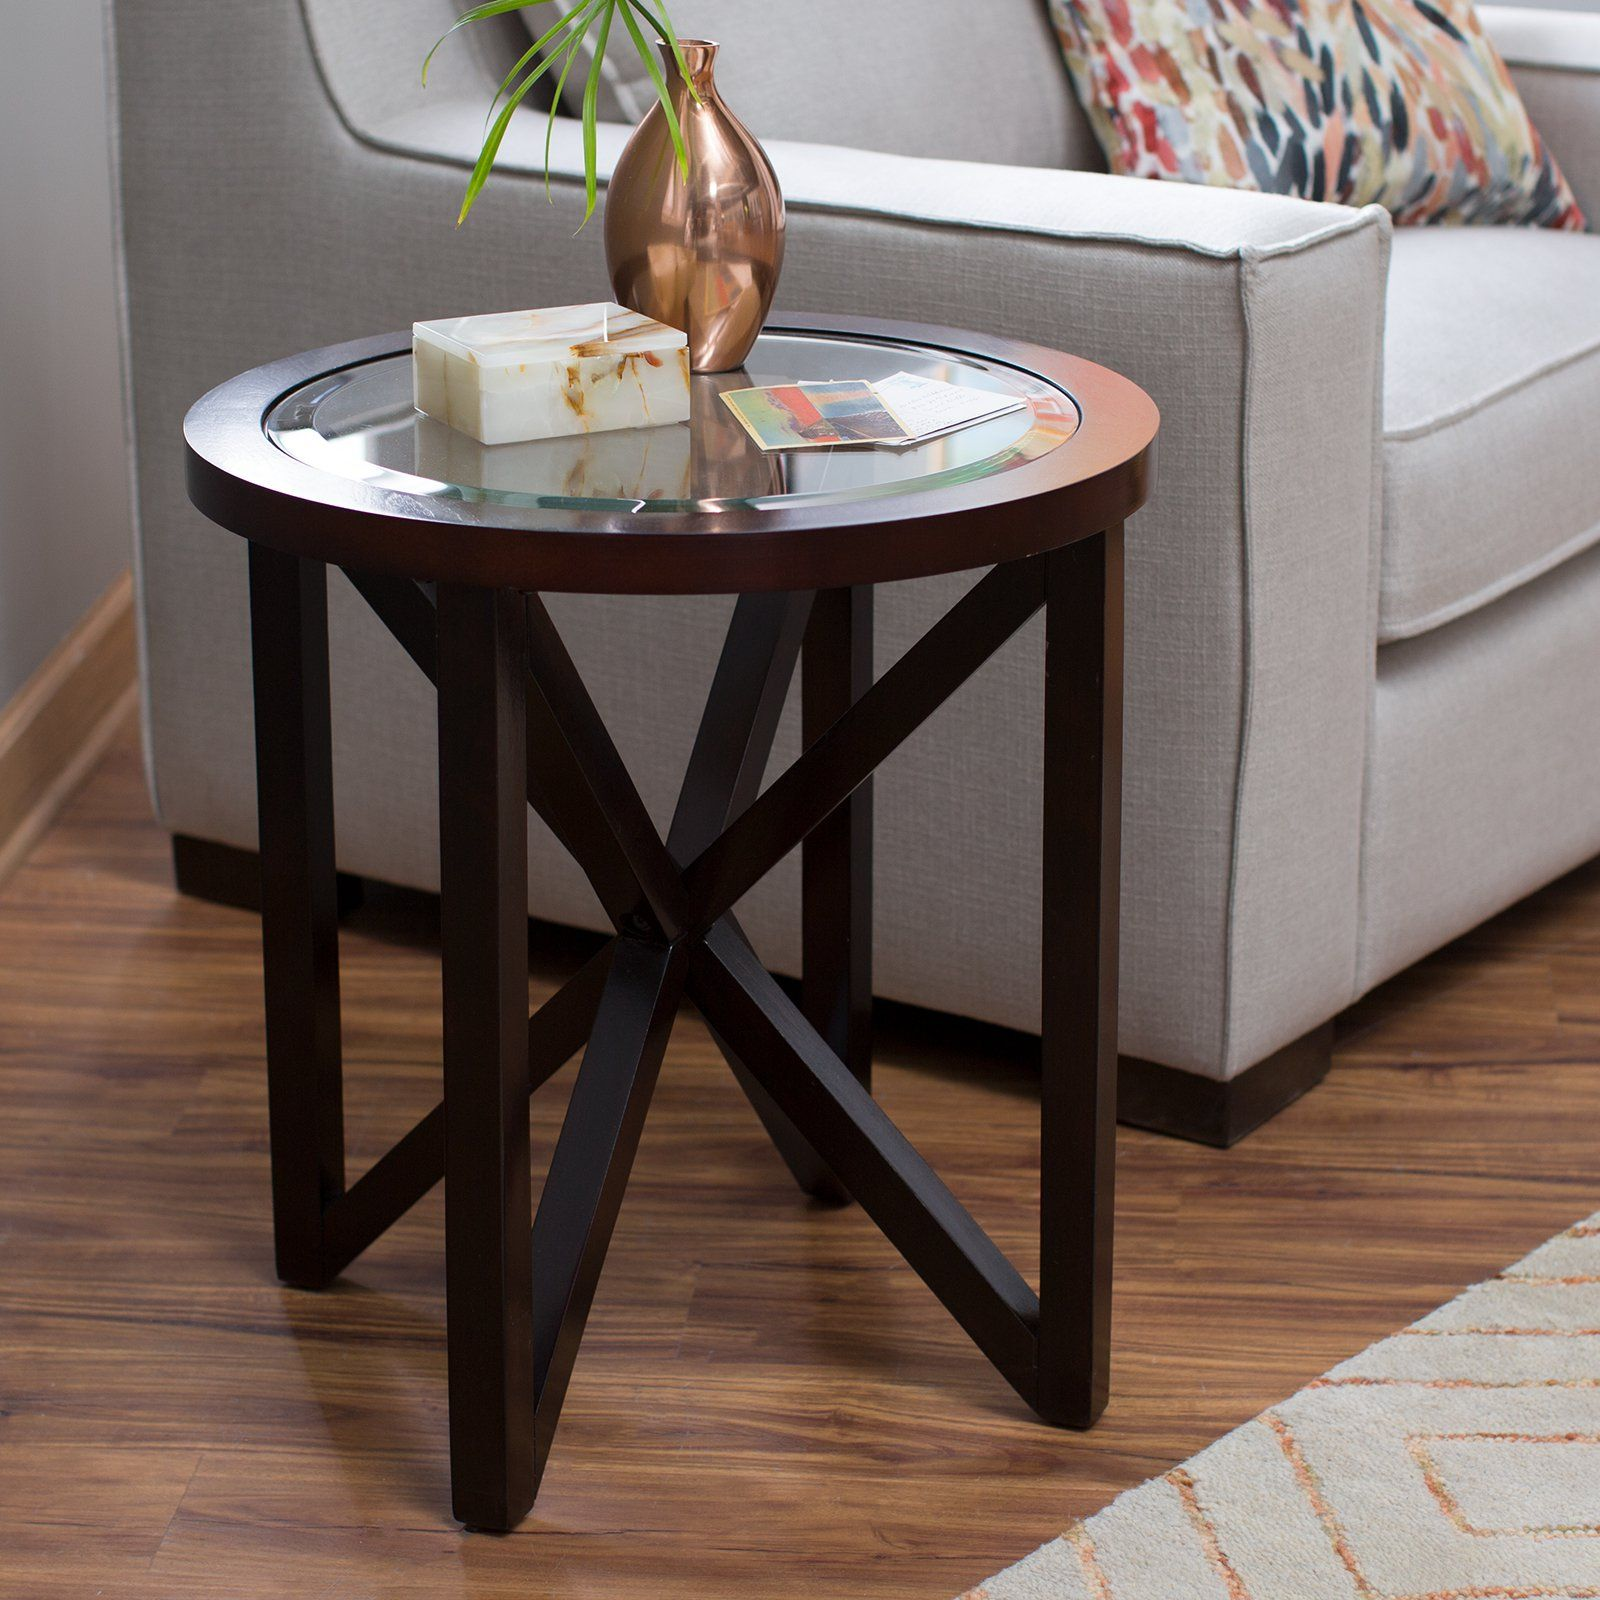 Webster Round End Table End Tables Round End Tables Glass End